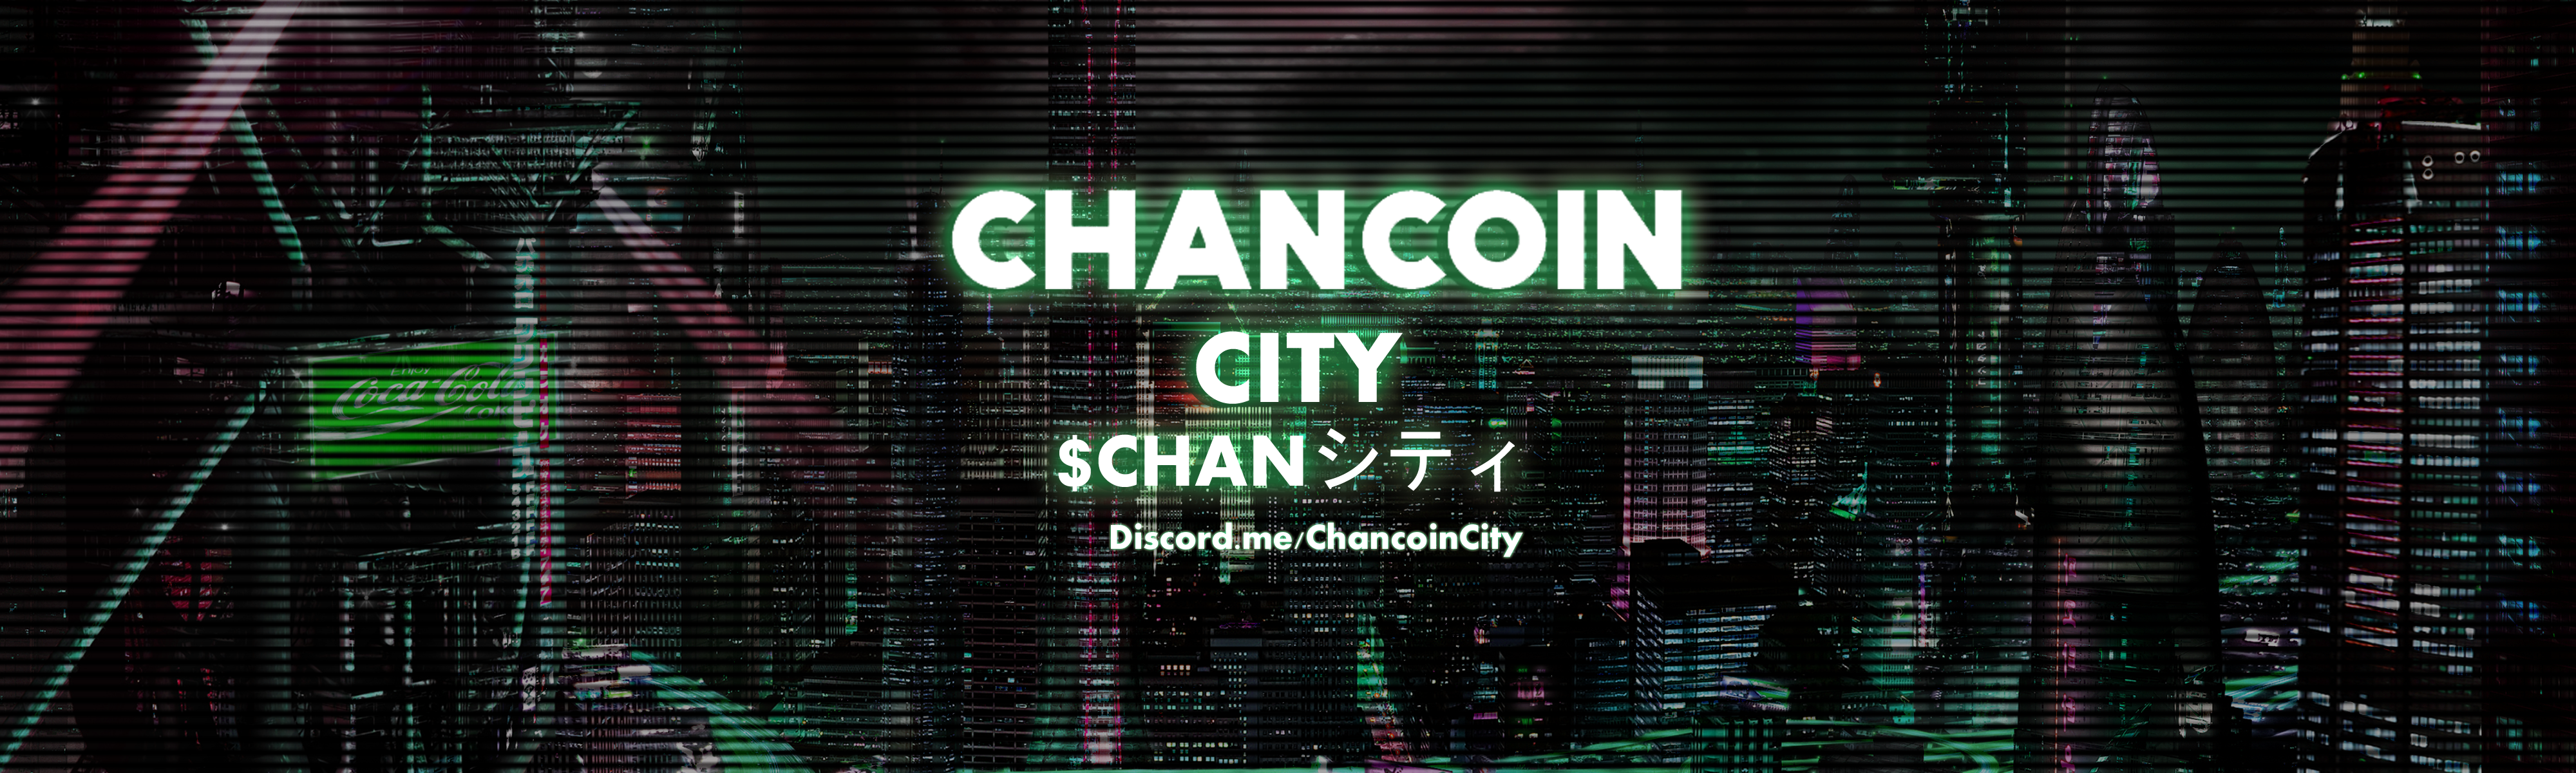 The 4chan communities have birthed a new cryptocurrency